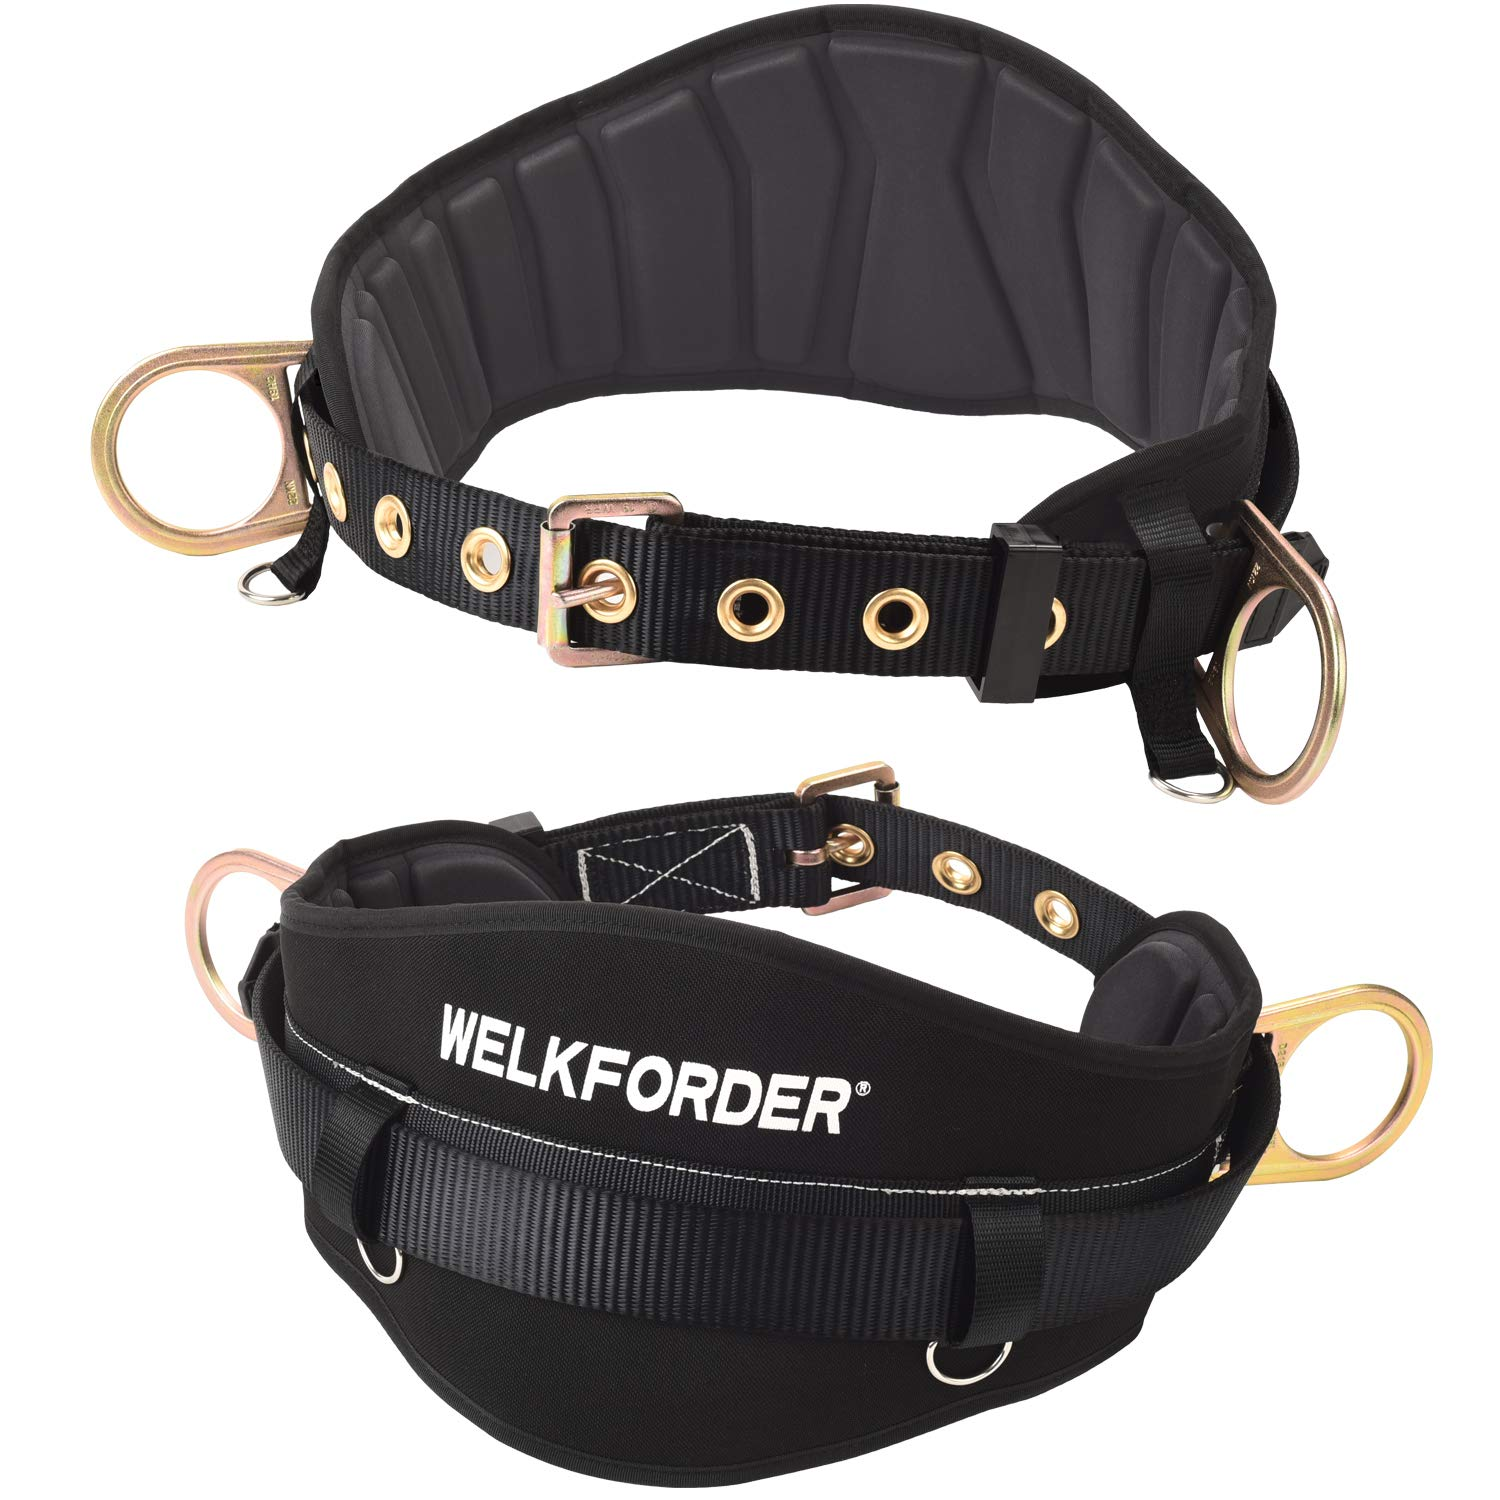 WELKFORDER Tongue Buckle Body Belt With Hot-Pressing Waist Pad and 2 Side D-Rings Personal Protective Equipment Safety Harness | Waist Fitting Size 32'' to 46'' for Work Positioning, Restraint by WELKFORDER